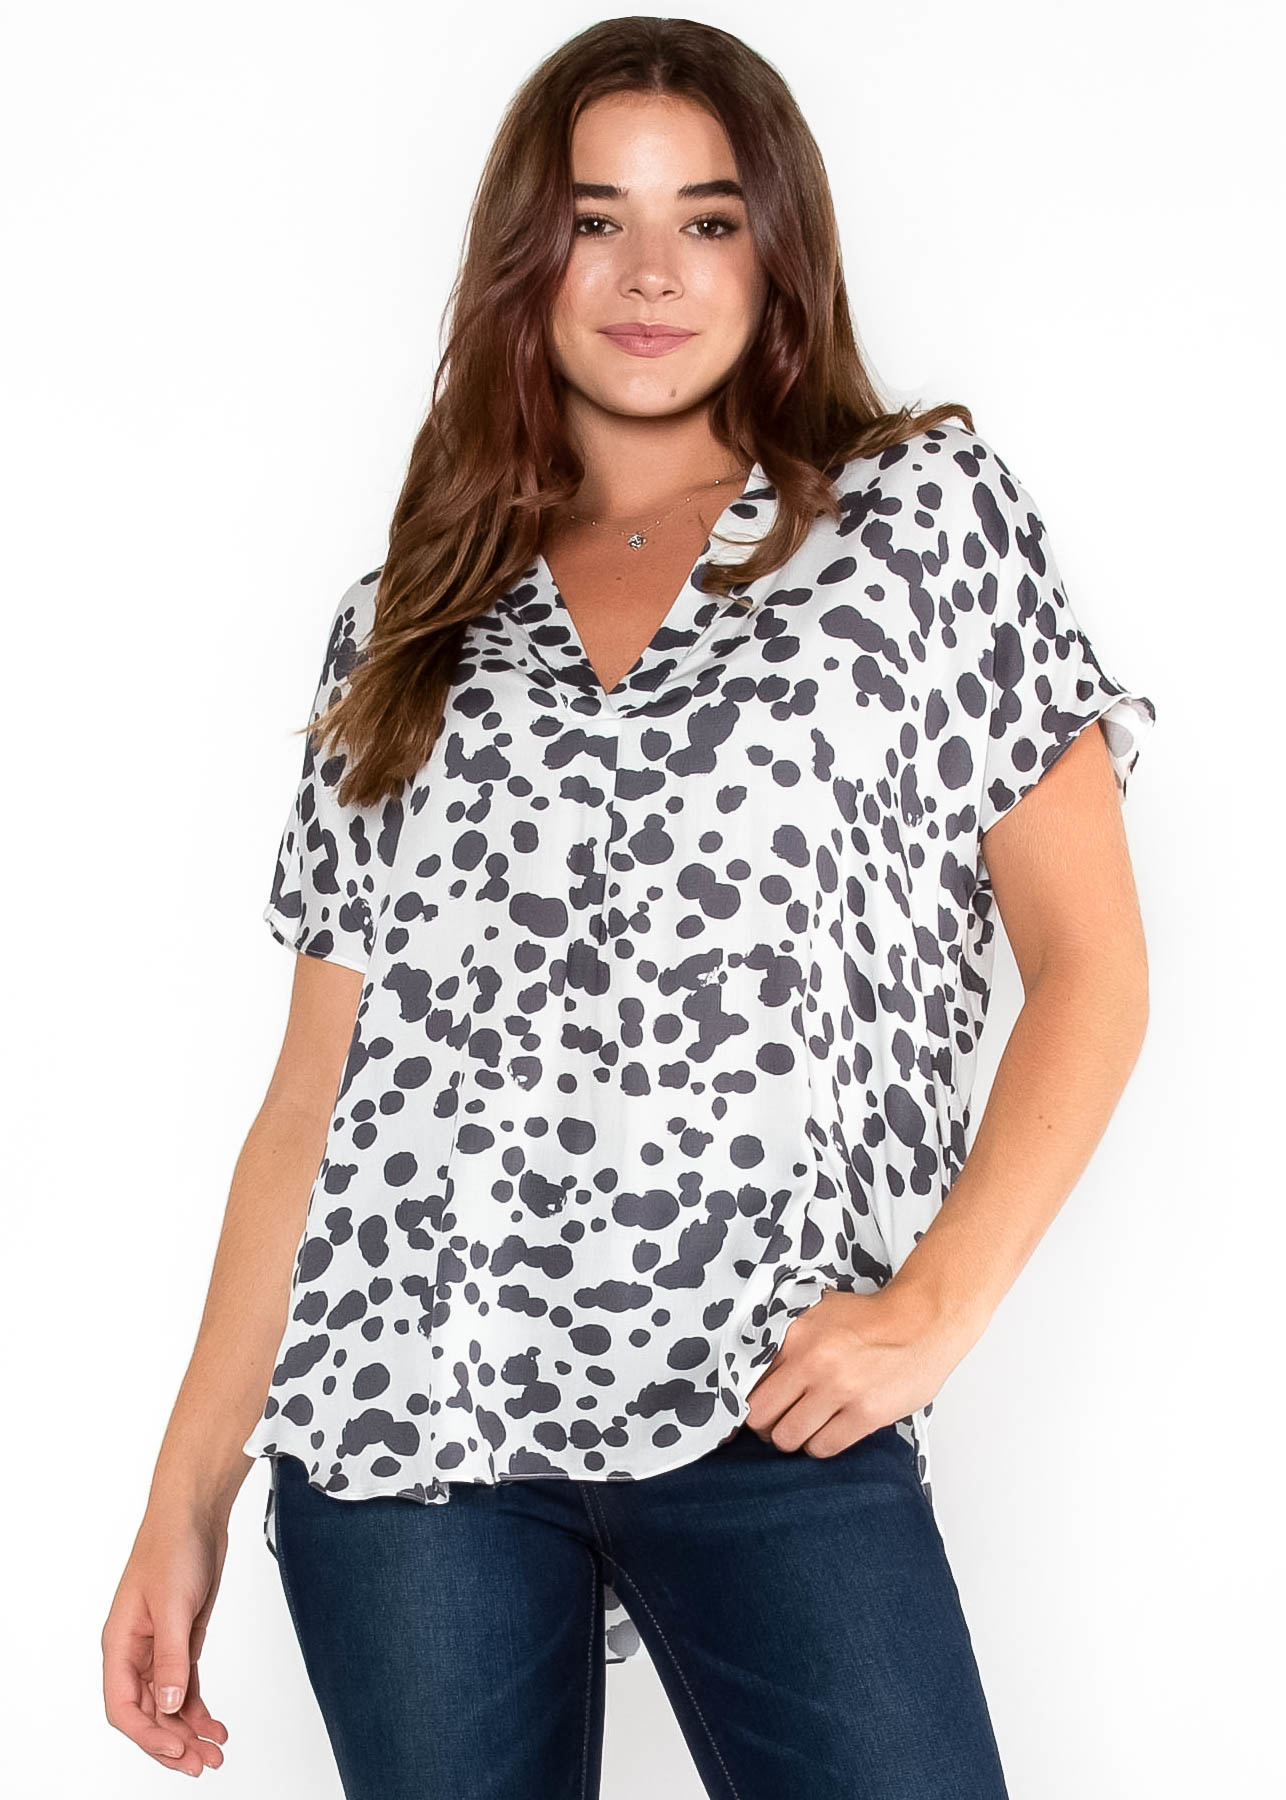 LIVE A LITTLE PRINTED BLOUSE